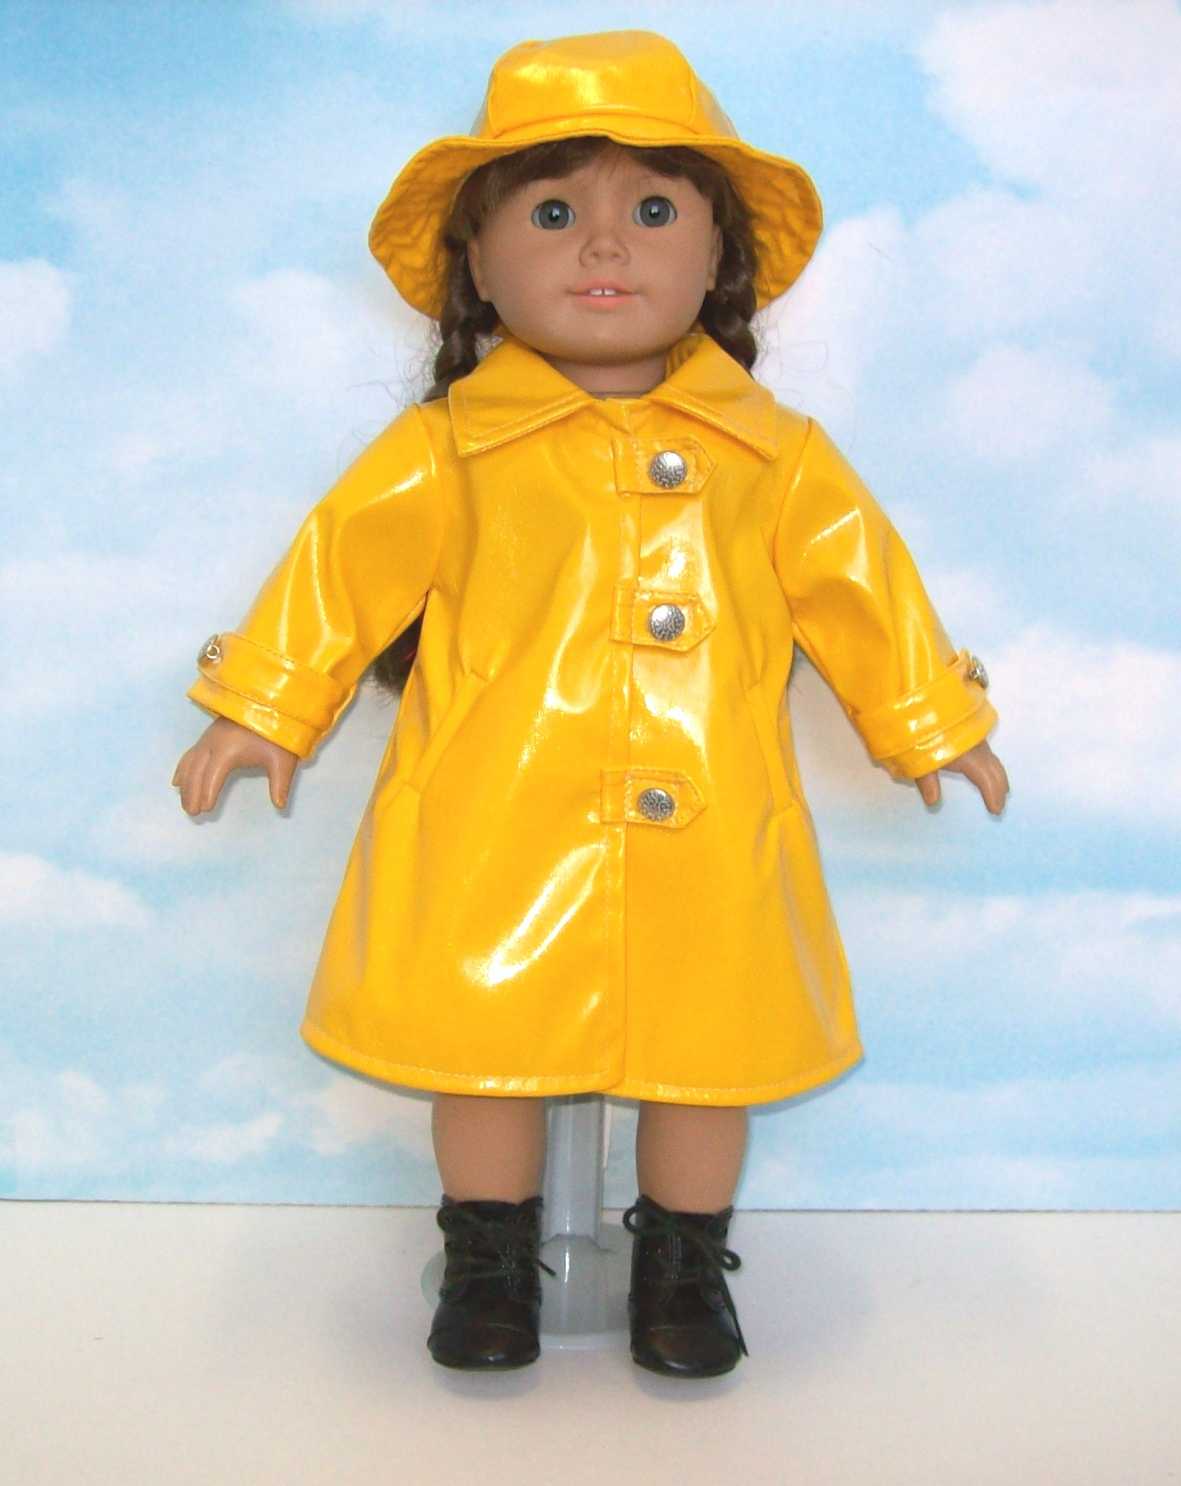 Yellow raincoat for Children/ Kids. Free shipping